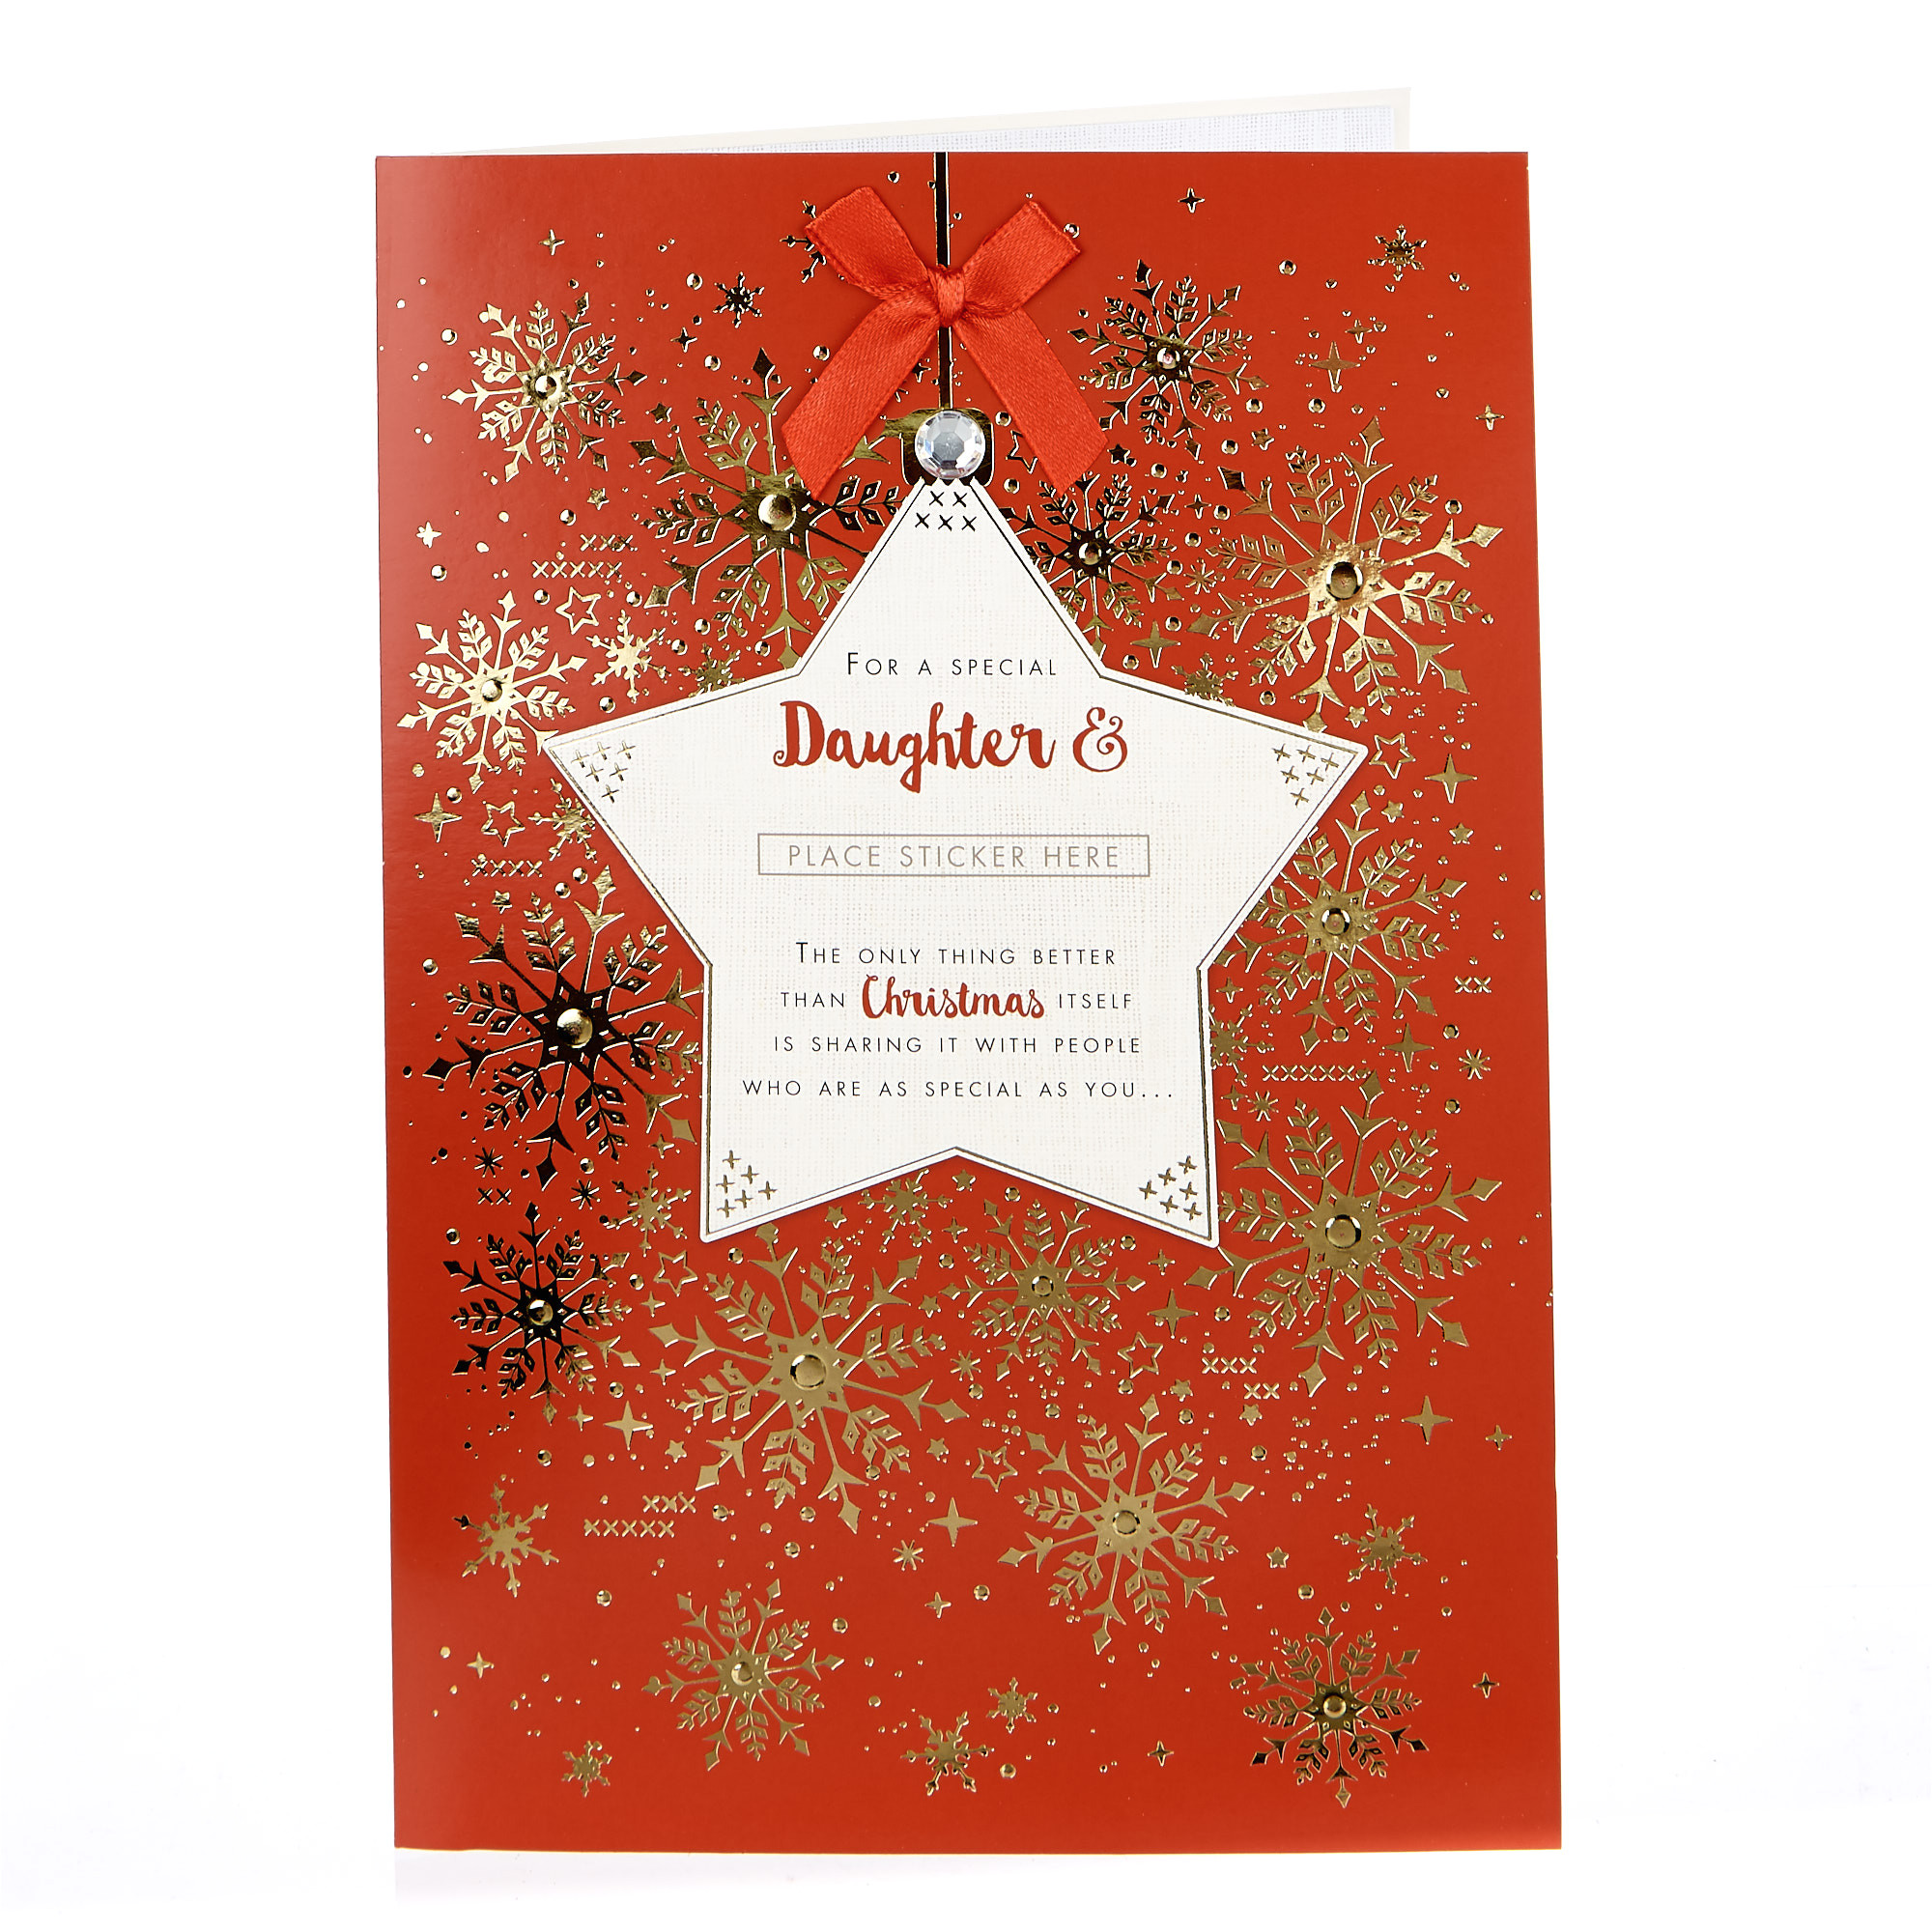 christmas card special daughter with stickers a jpg